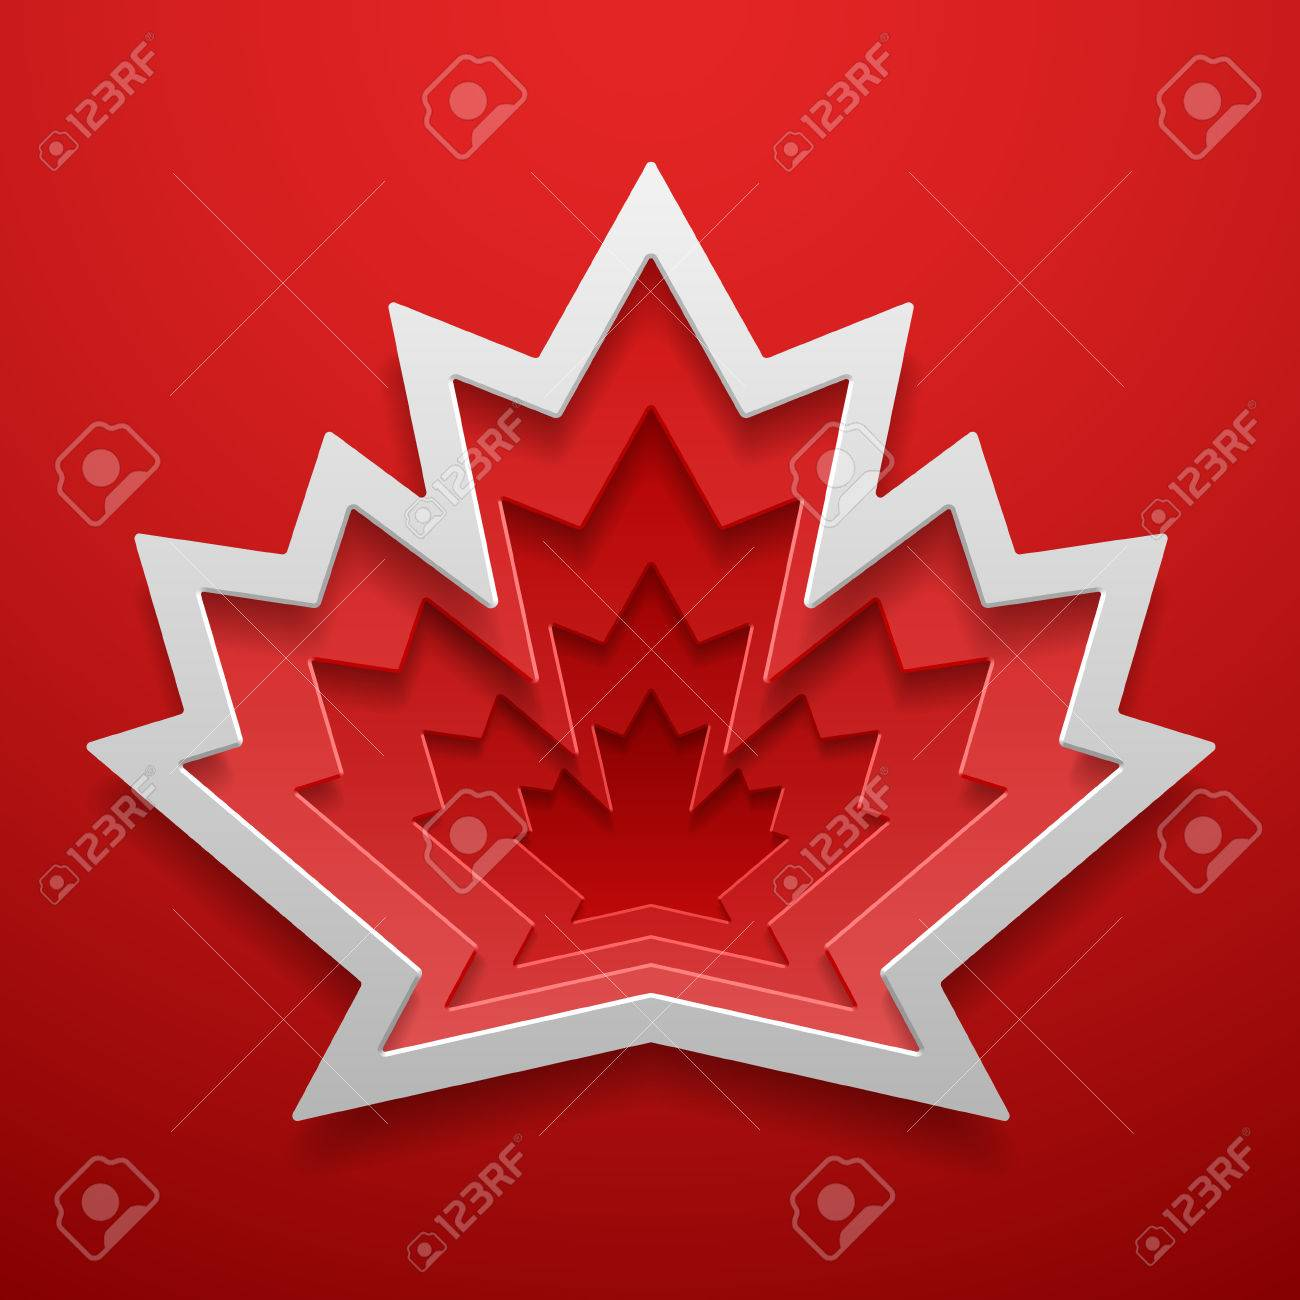 Maple Leaf Cutted Out Shape Canadian Symbol Decoration Template